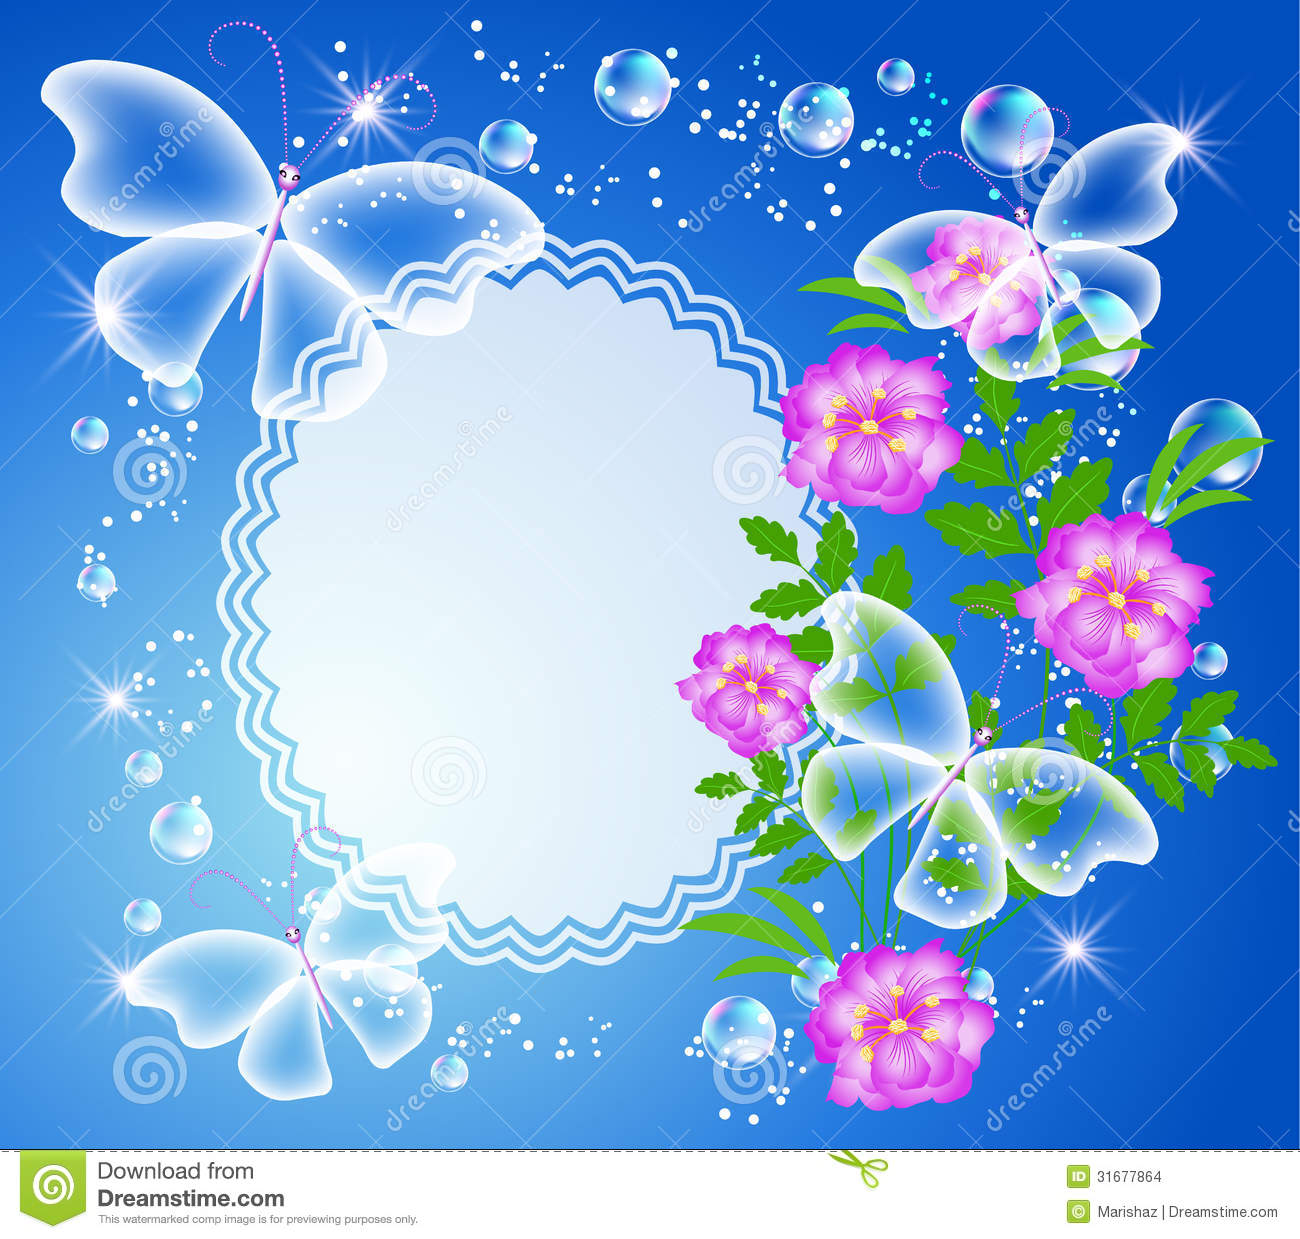 Background With Frame, Flowers And Butterfly Stock Vector